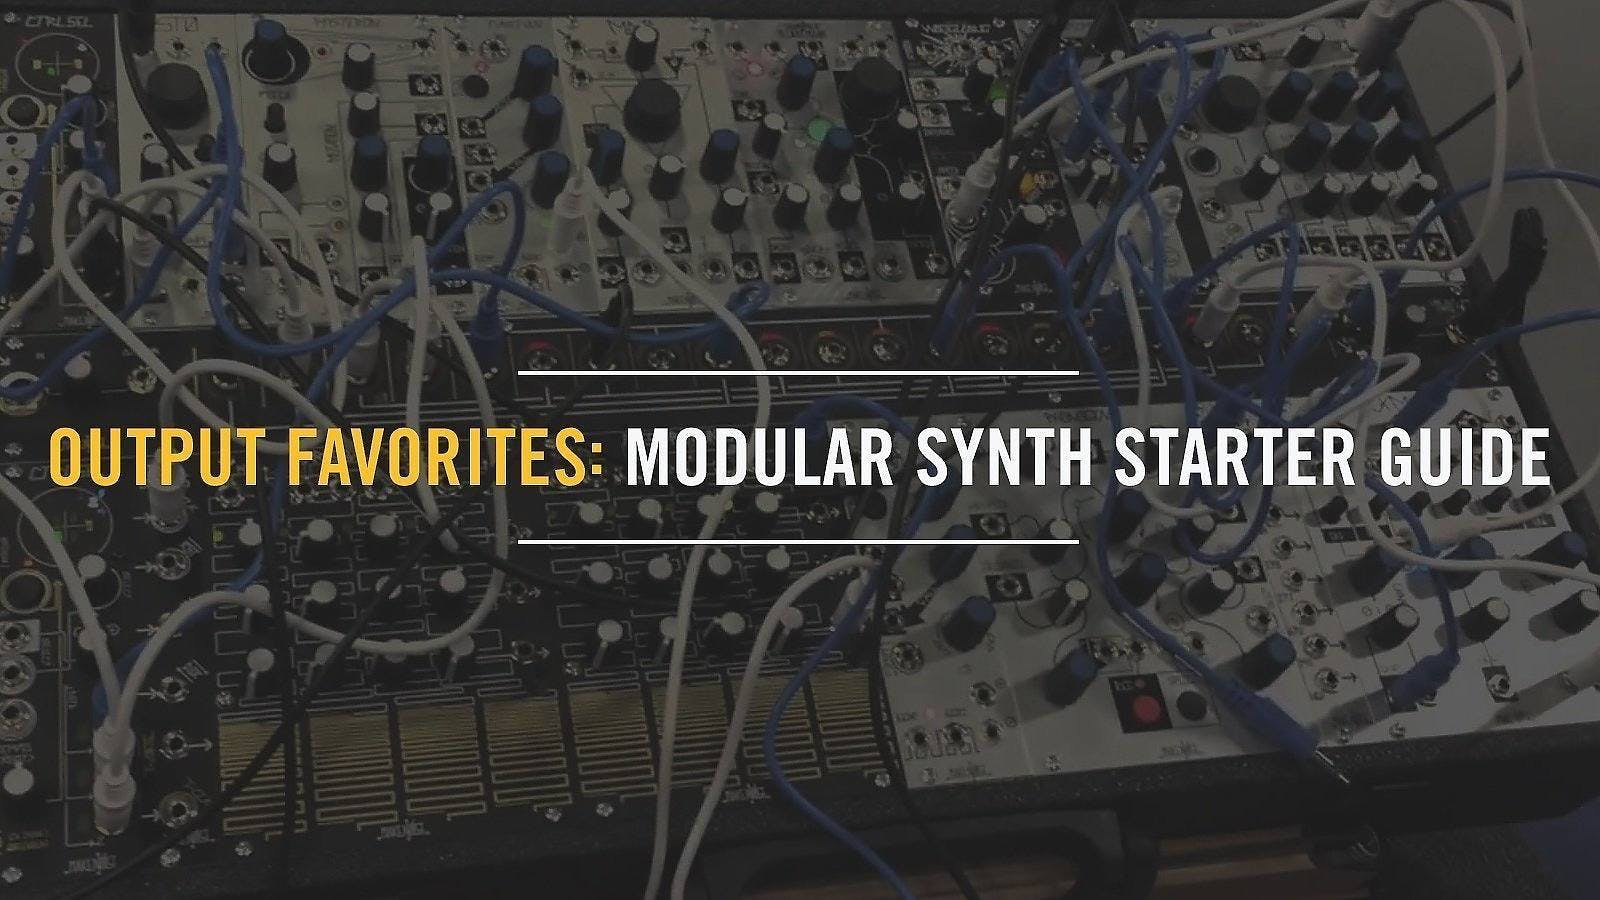 Output Favorites: Modular Synth Starter Guide